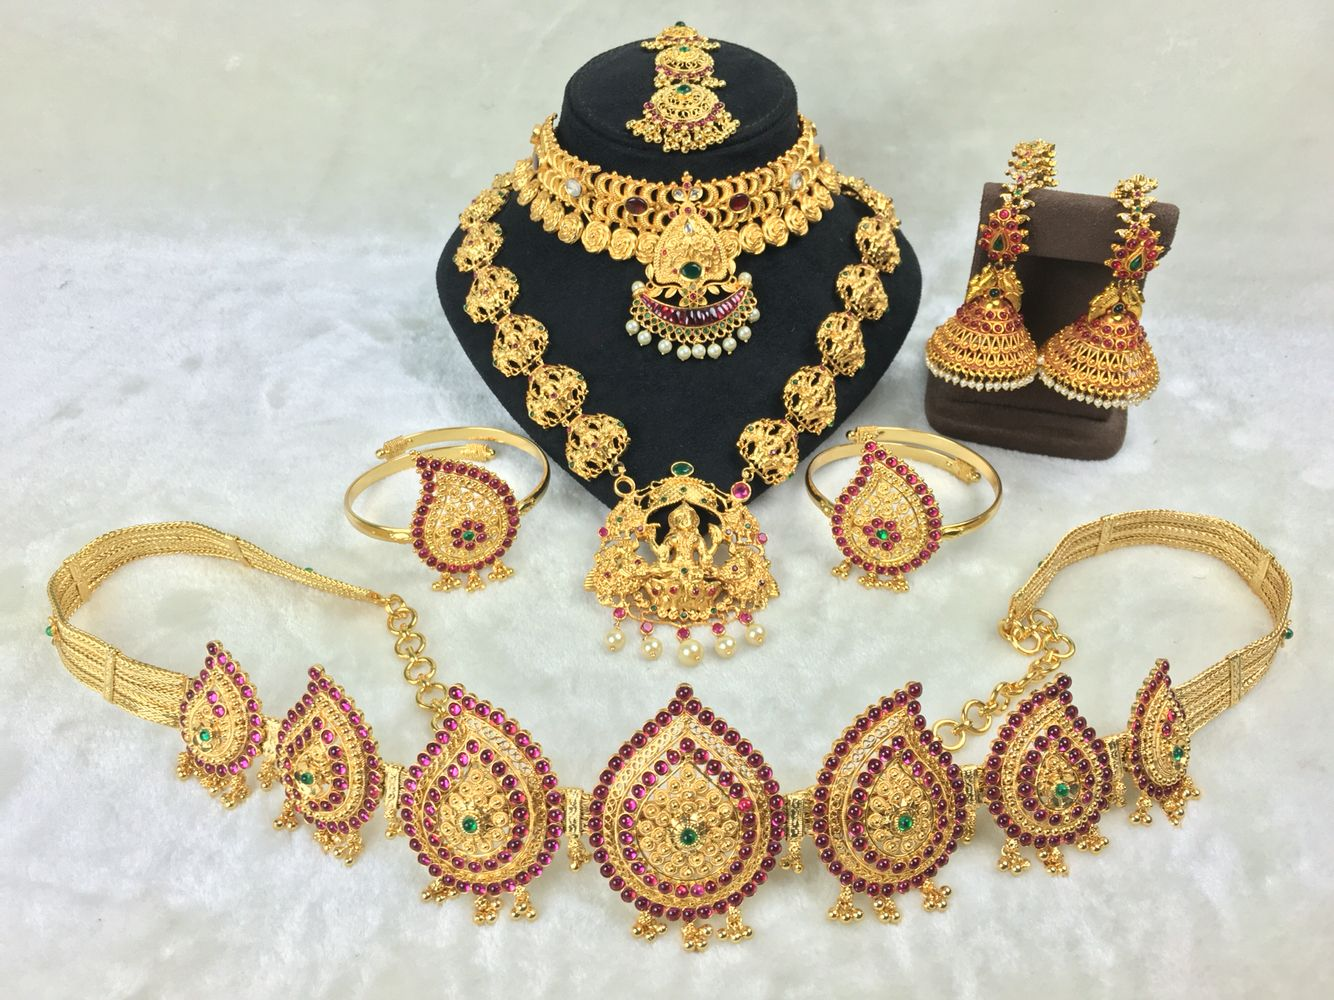 We Rent High Quality Bridal Jewellery Sets For Muhurtham Reception And Other Special Occ Bridal Jewelry Sets Bridal Jewelry Collection Bridal Fashion Jewelry